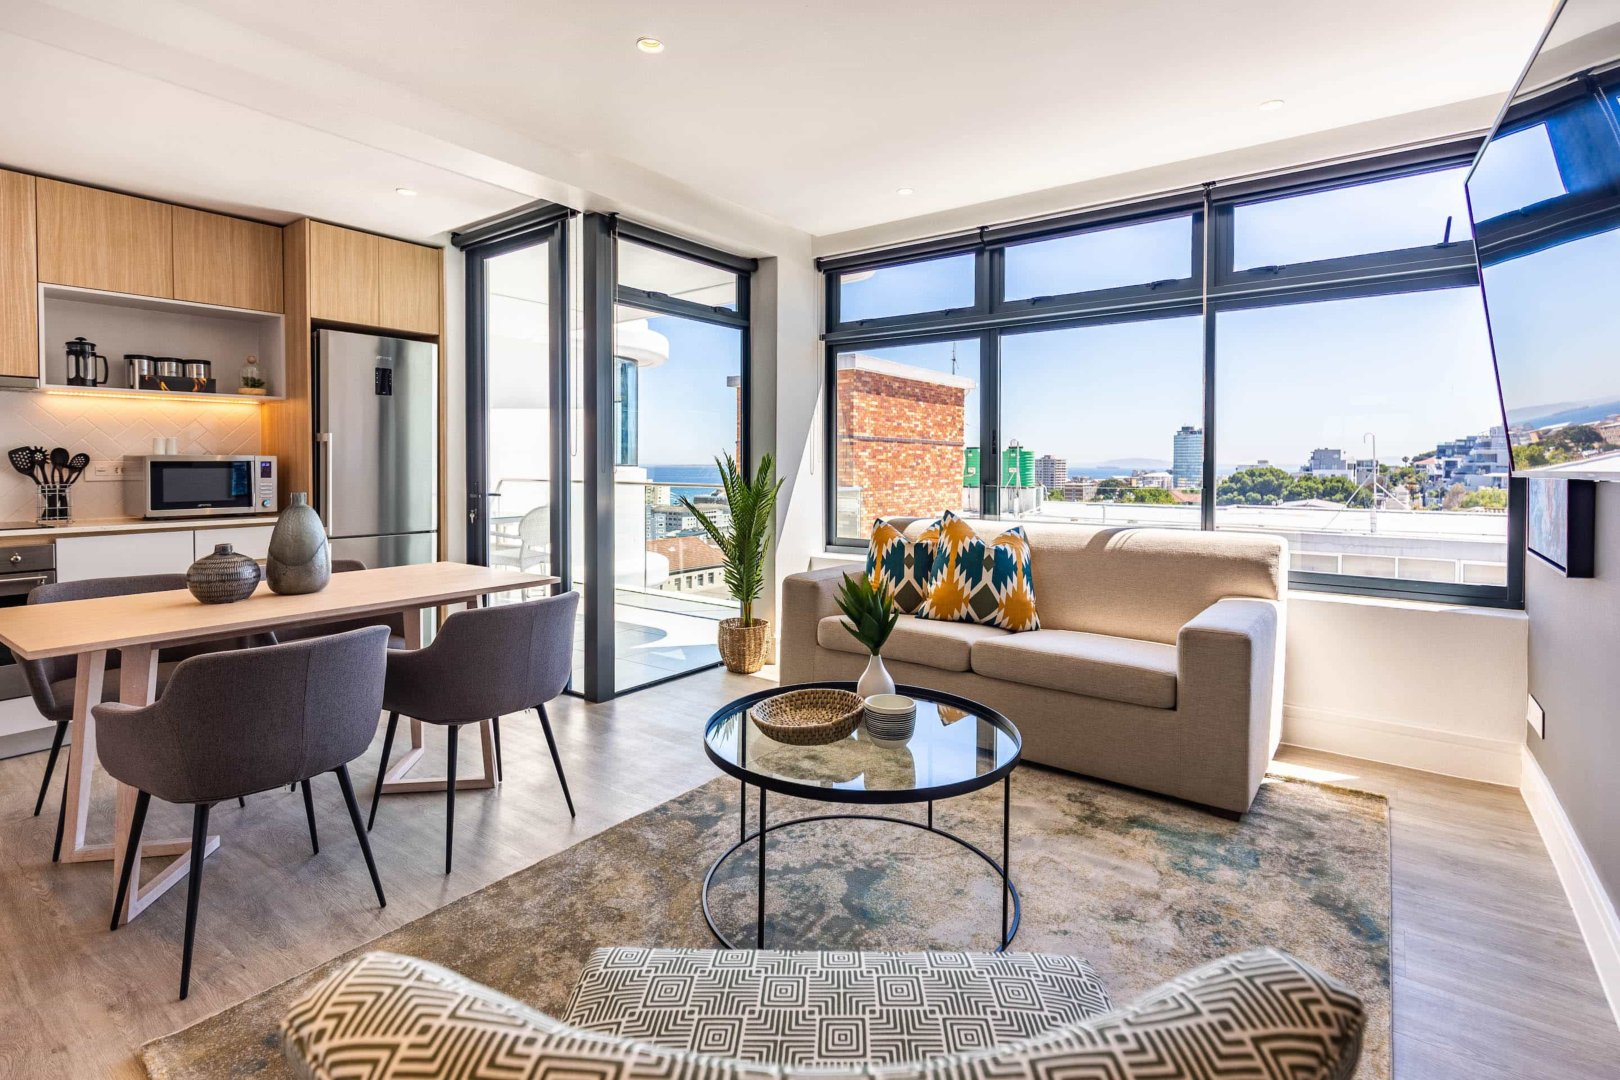 Brand-new 1 Bedroom / 1 Bathroom apartment for sale in Sea Point